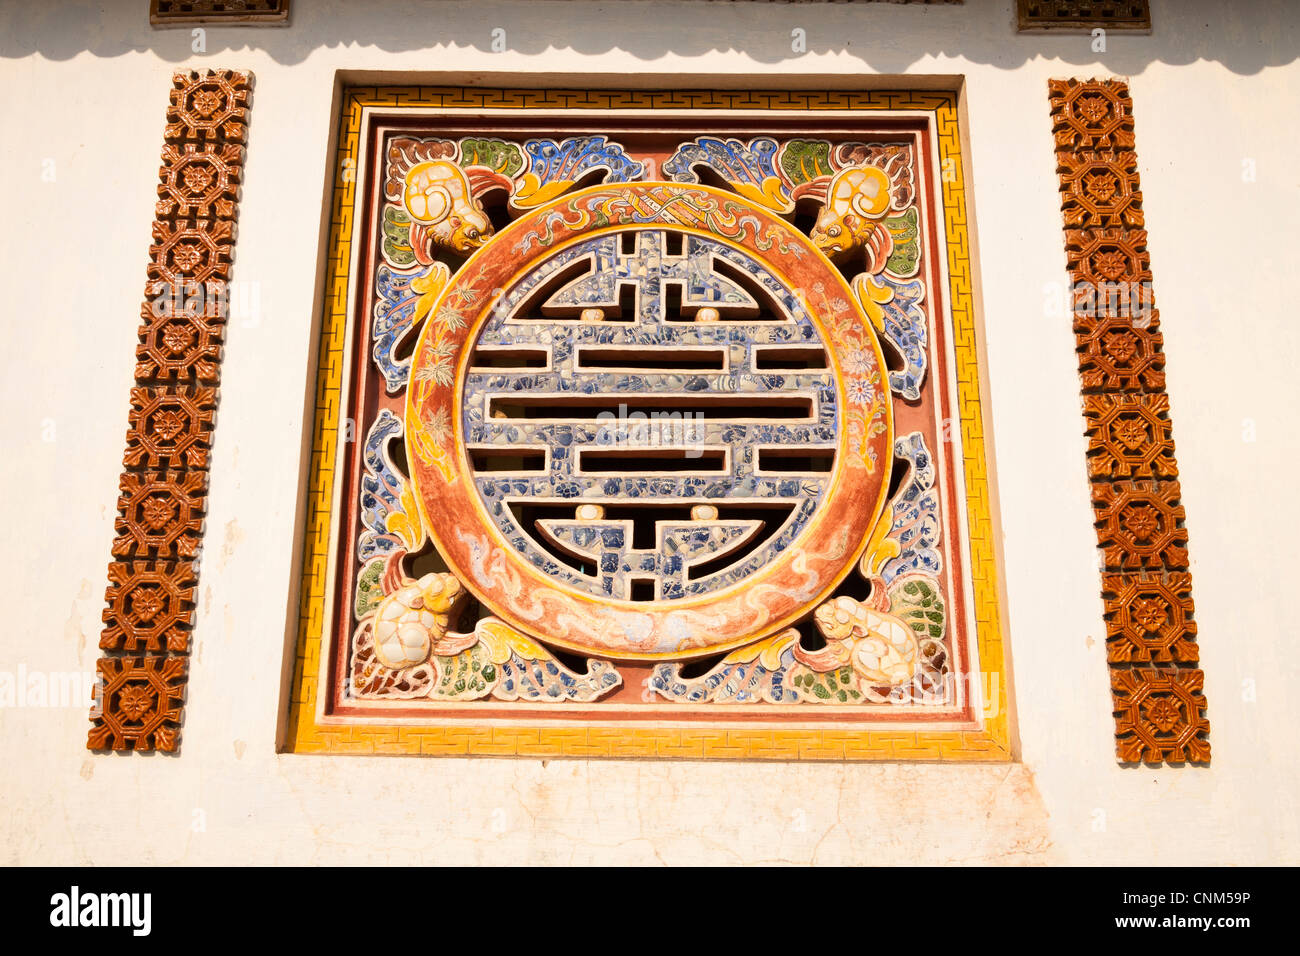 Symbol of longevity on a wall of the Hall of the Mandarins in the Imperial City, Hue, Vietnam - Stock Image